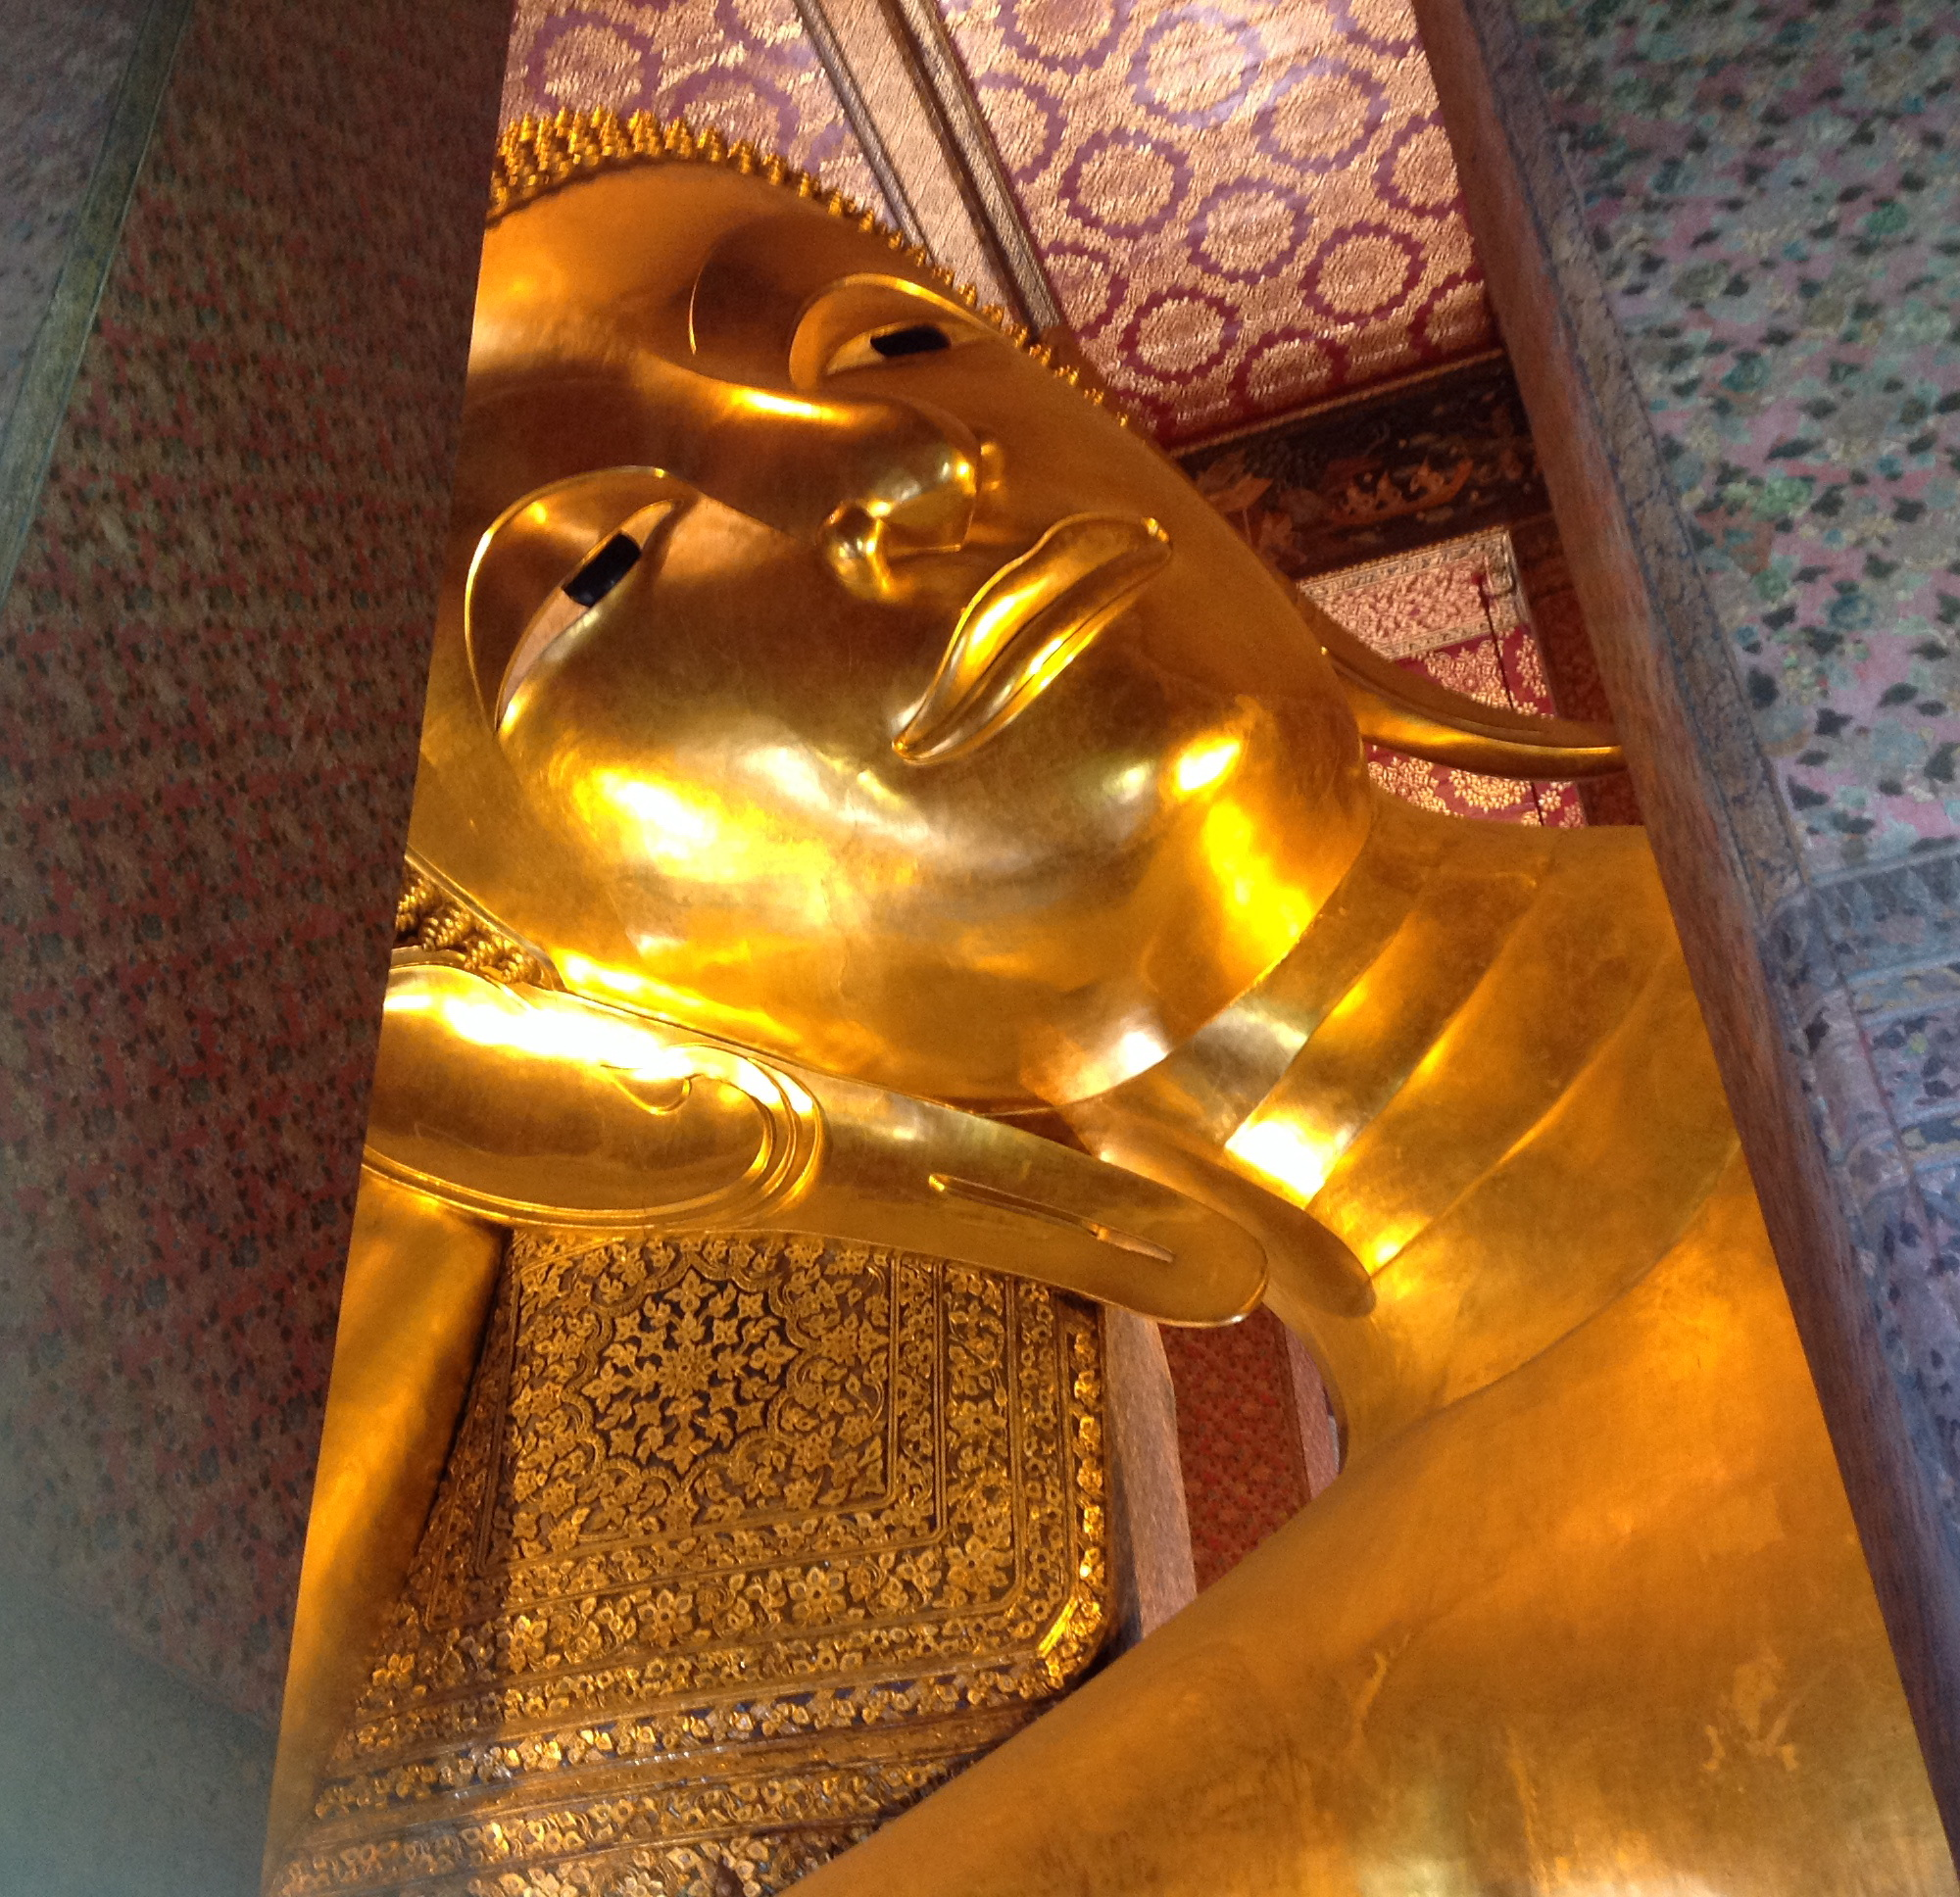 Wat Pho, the birthplace of Thai massage